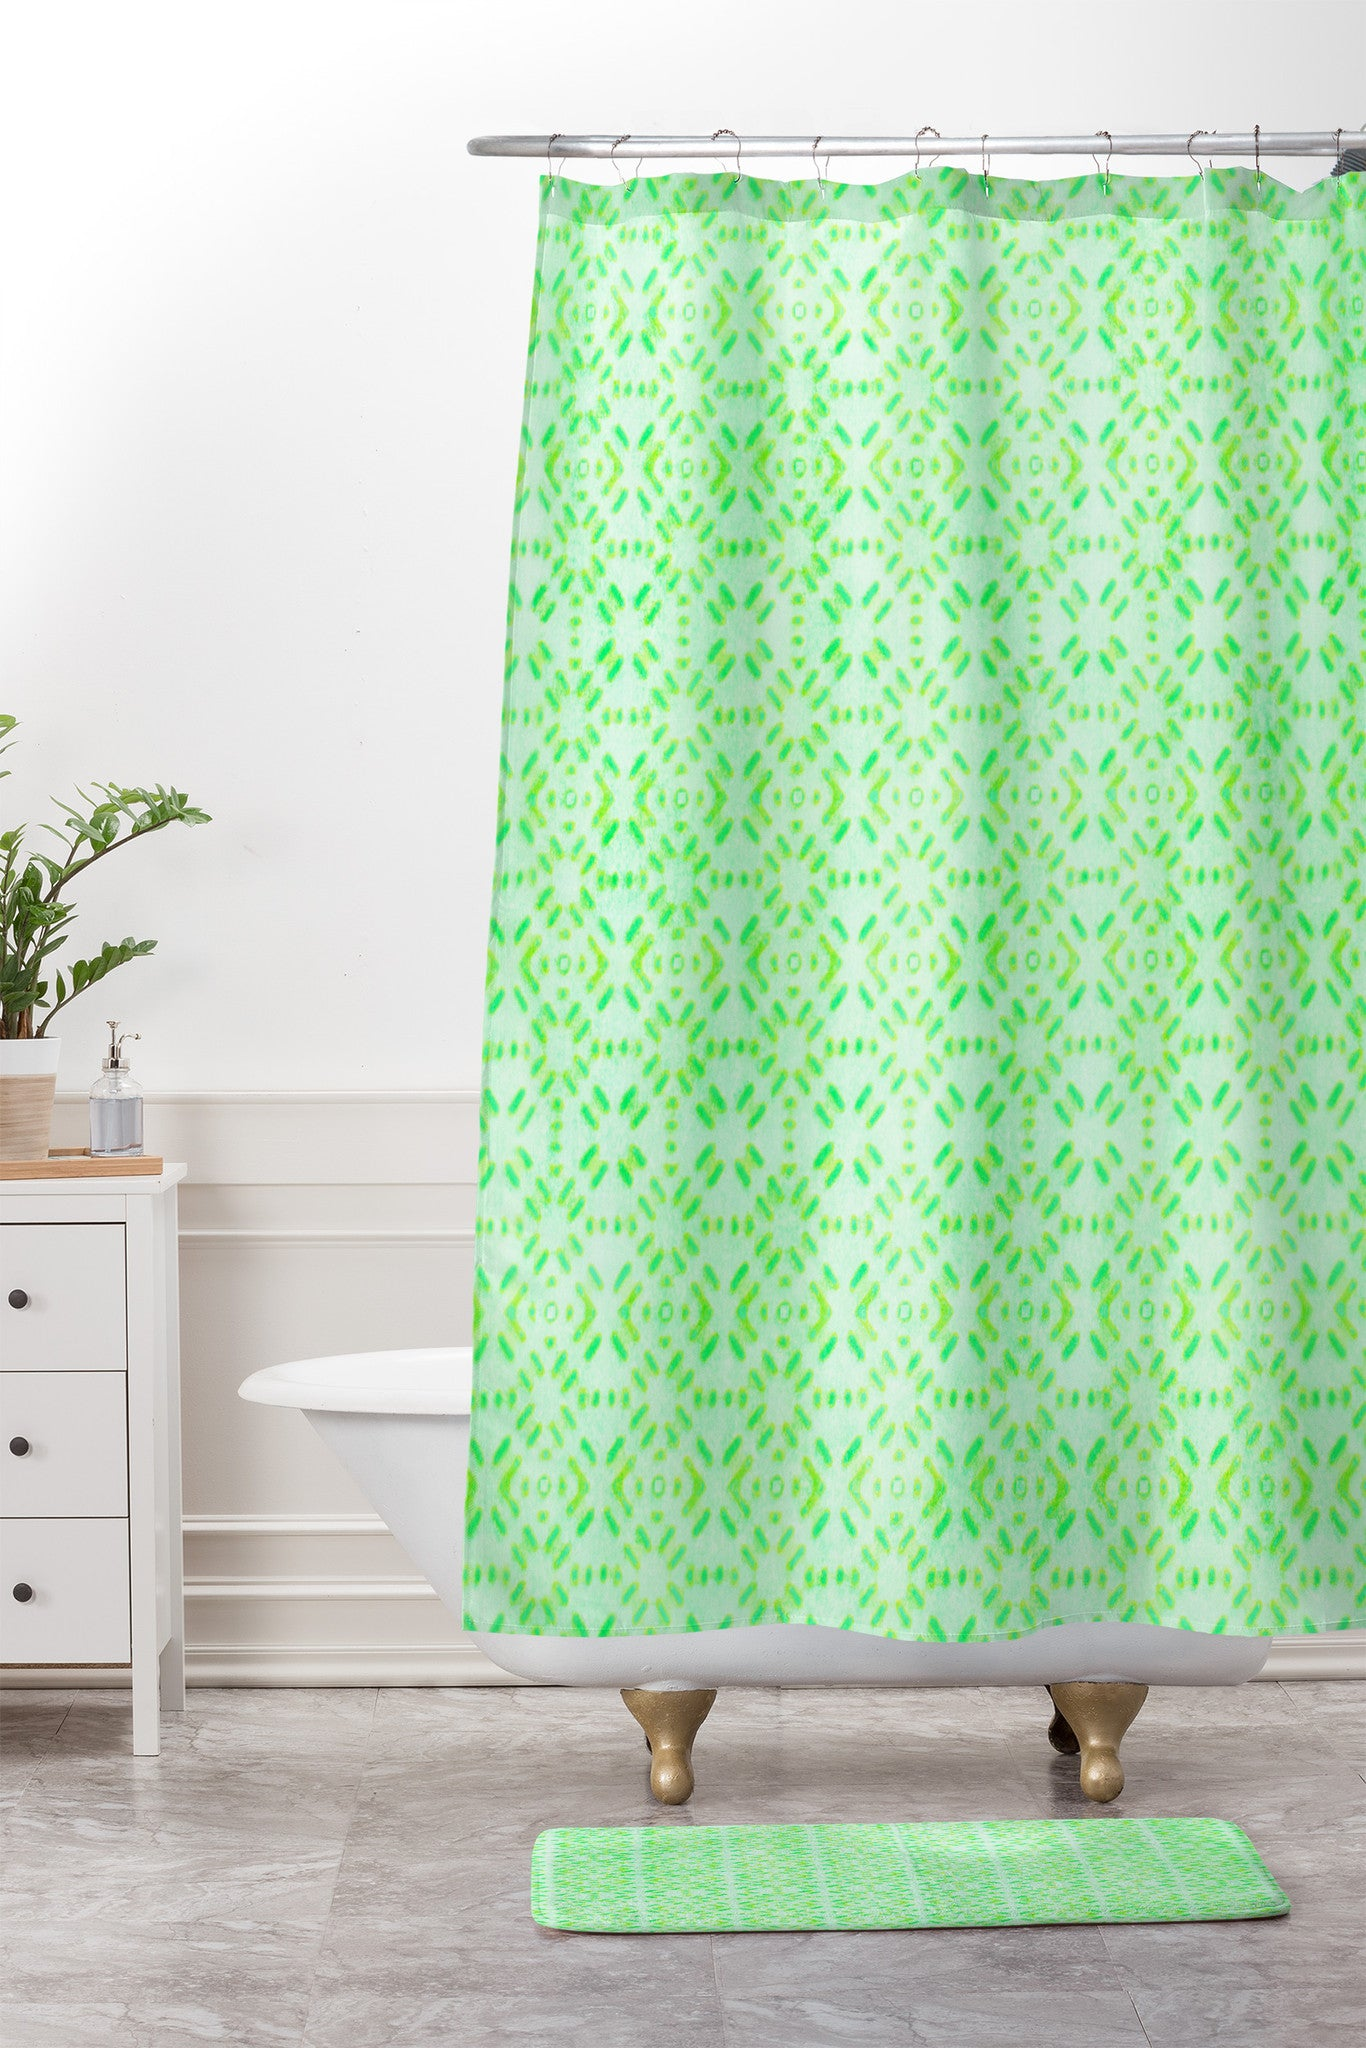 Hadley Hutton Succulent Collection 2 Shower Curtain And Mat